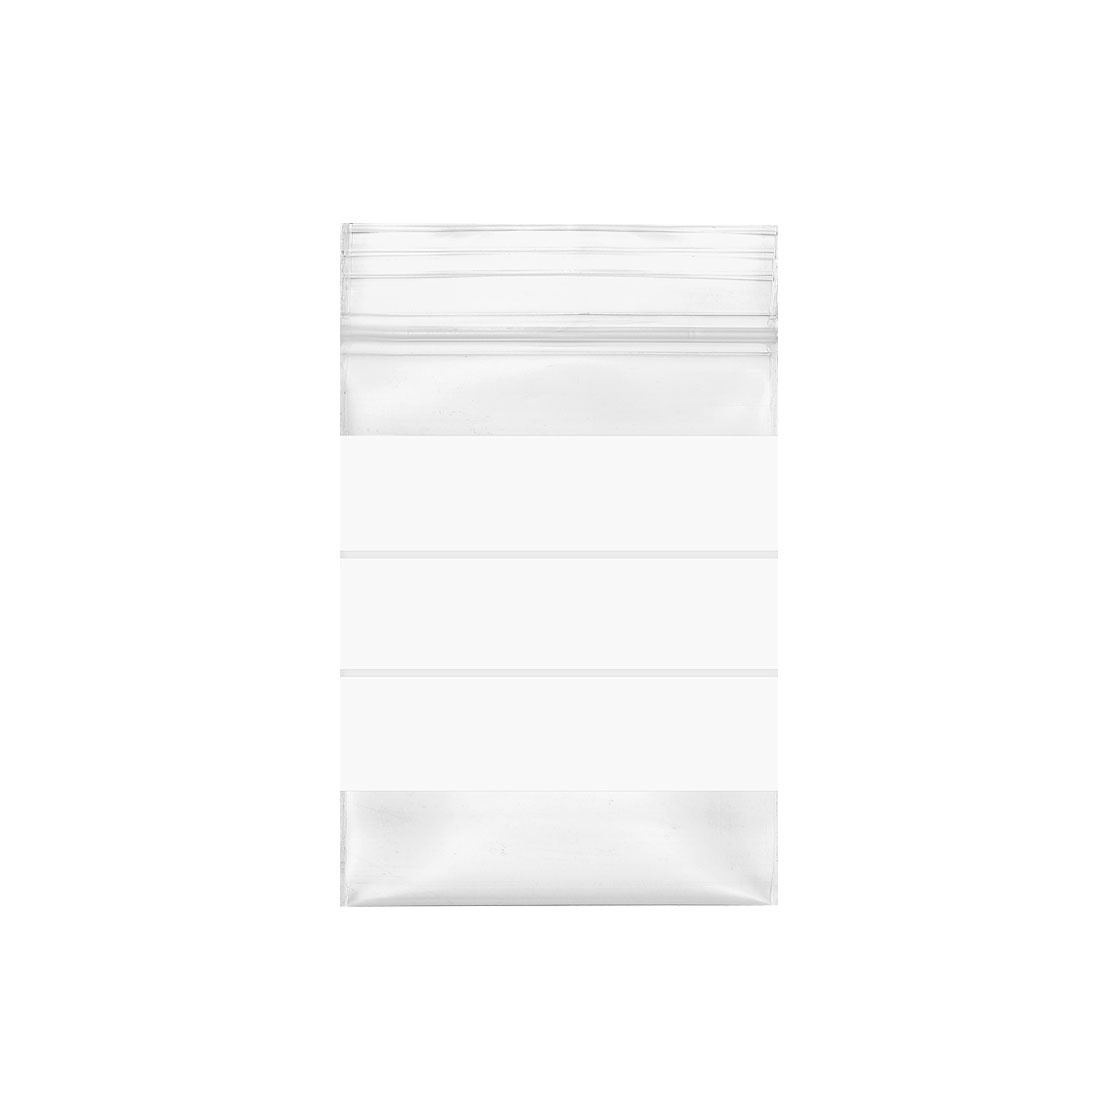 "300 Pcs Zip Lock Plastic Bags Writable Reclosable Disposable Clear 2.7""X2"" 8 MIL"